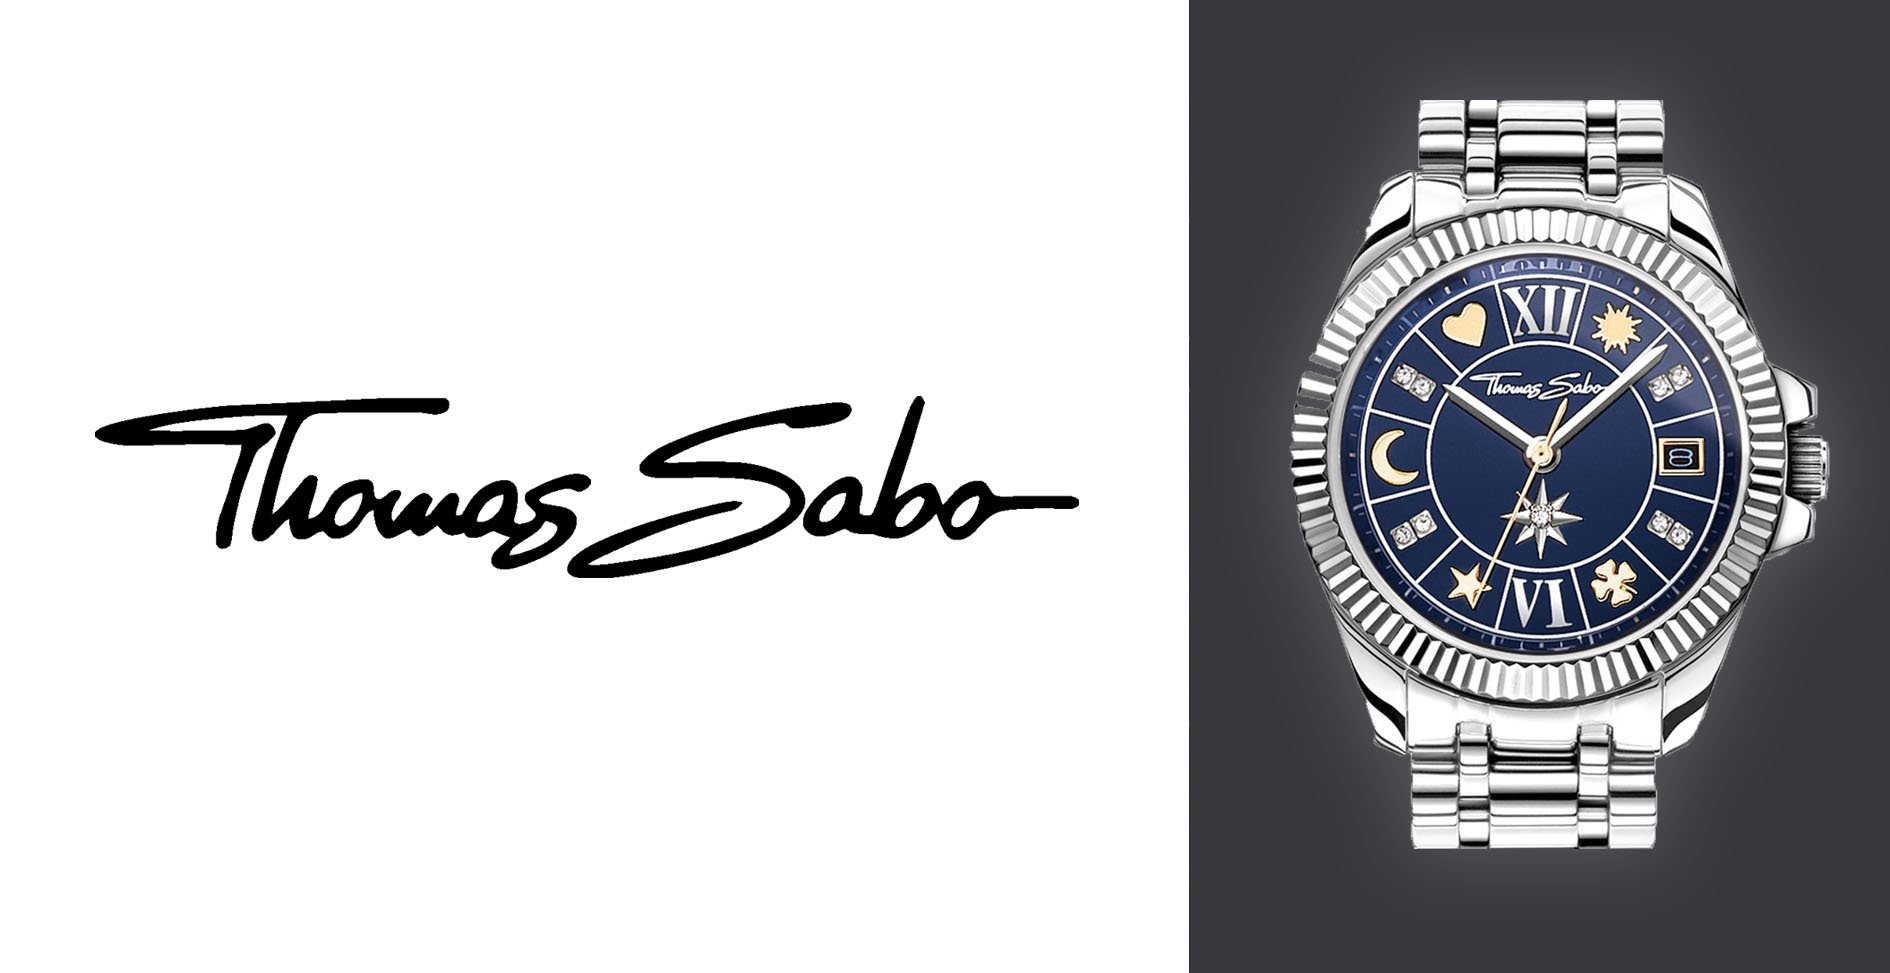 A Review of Thomas Sabo's Lucky Charm Watch